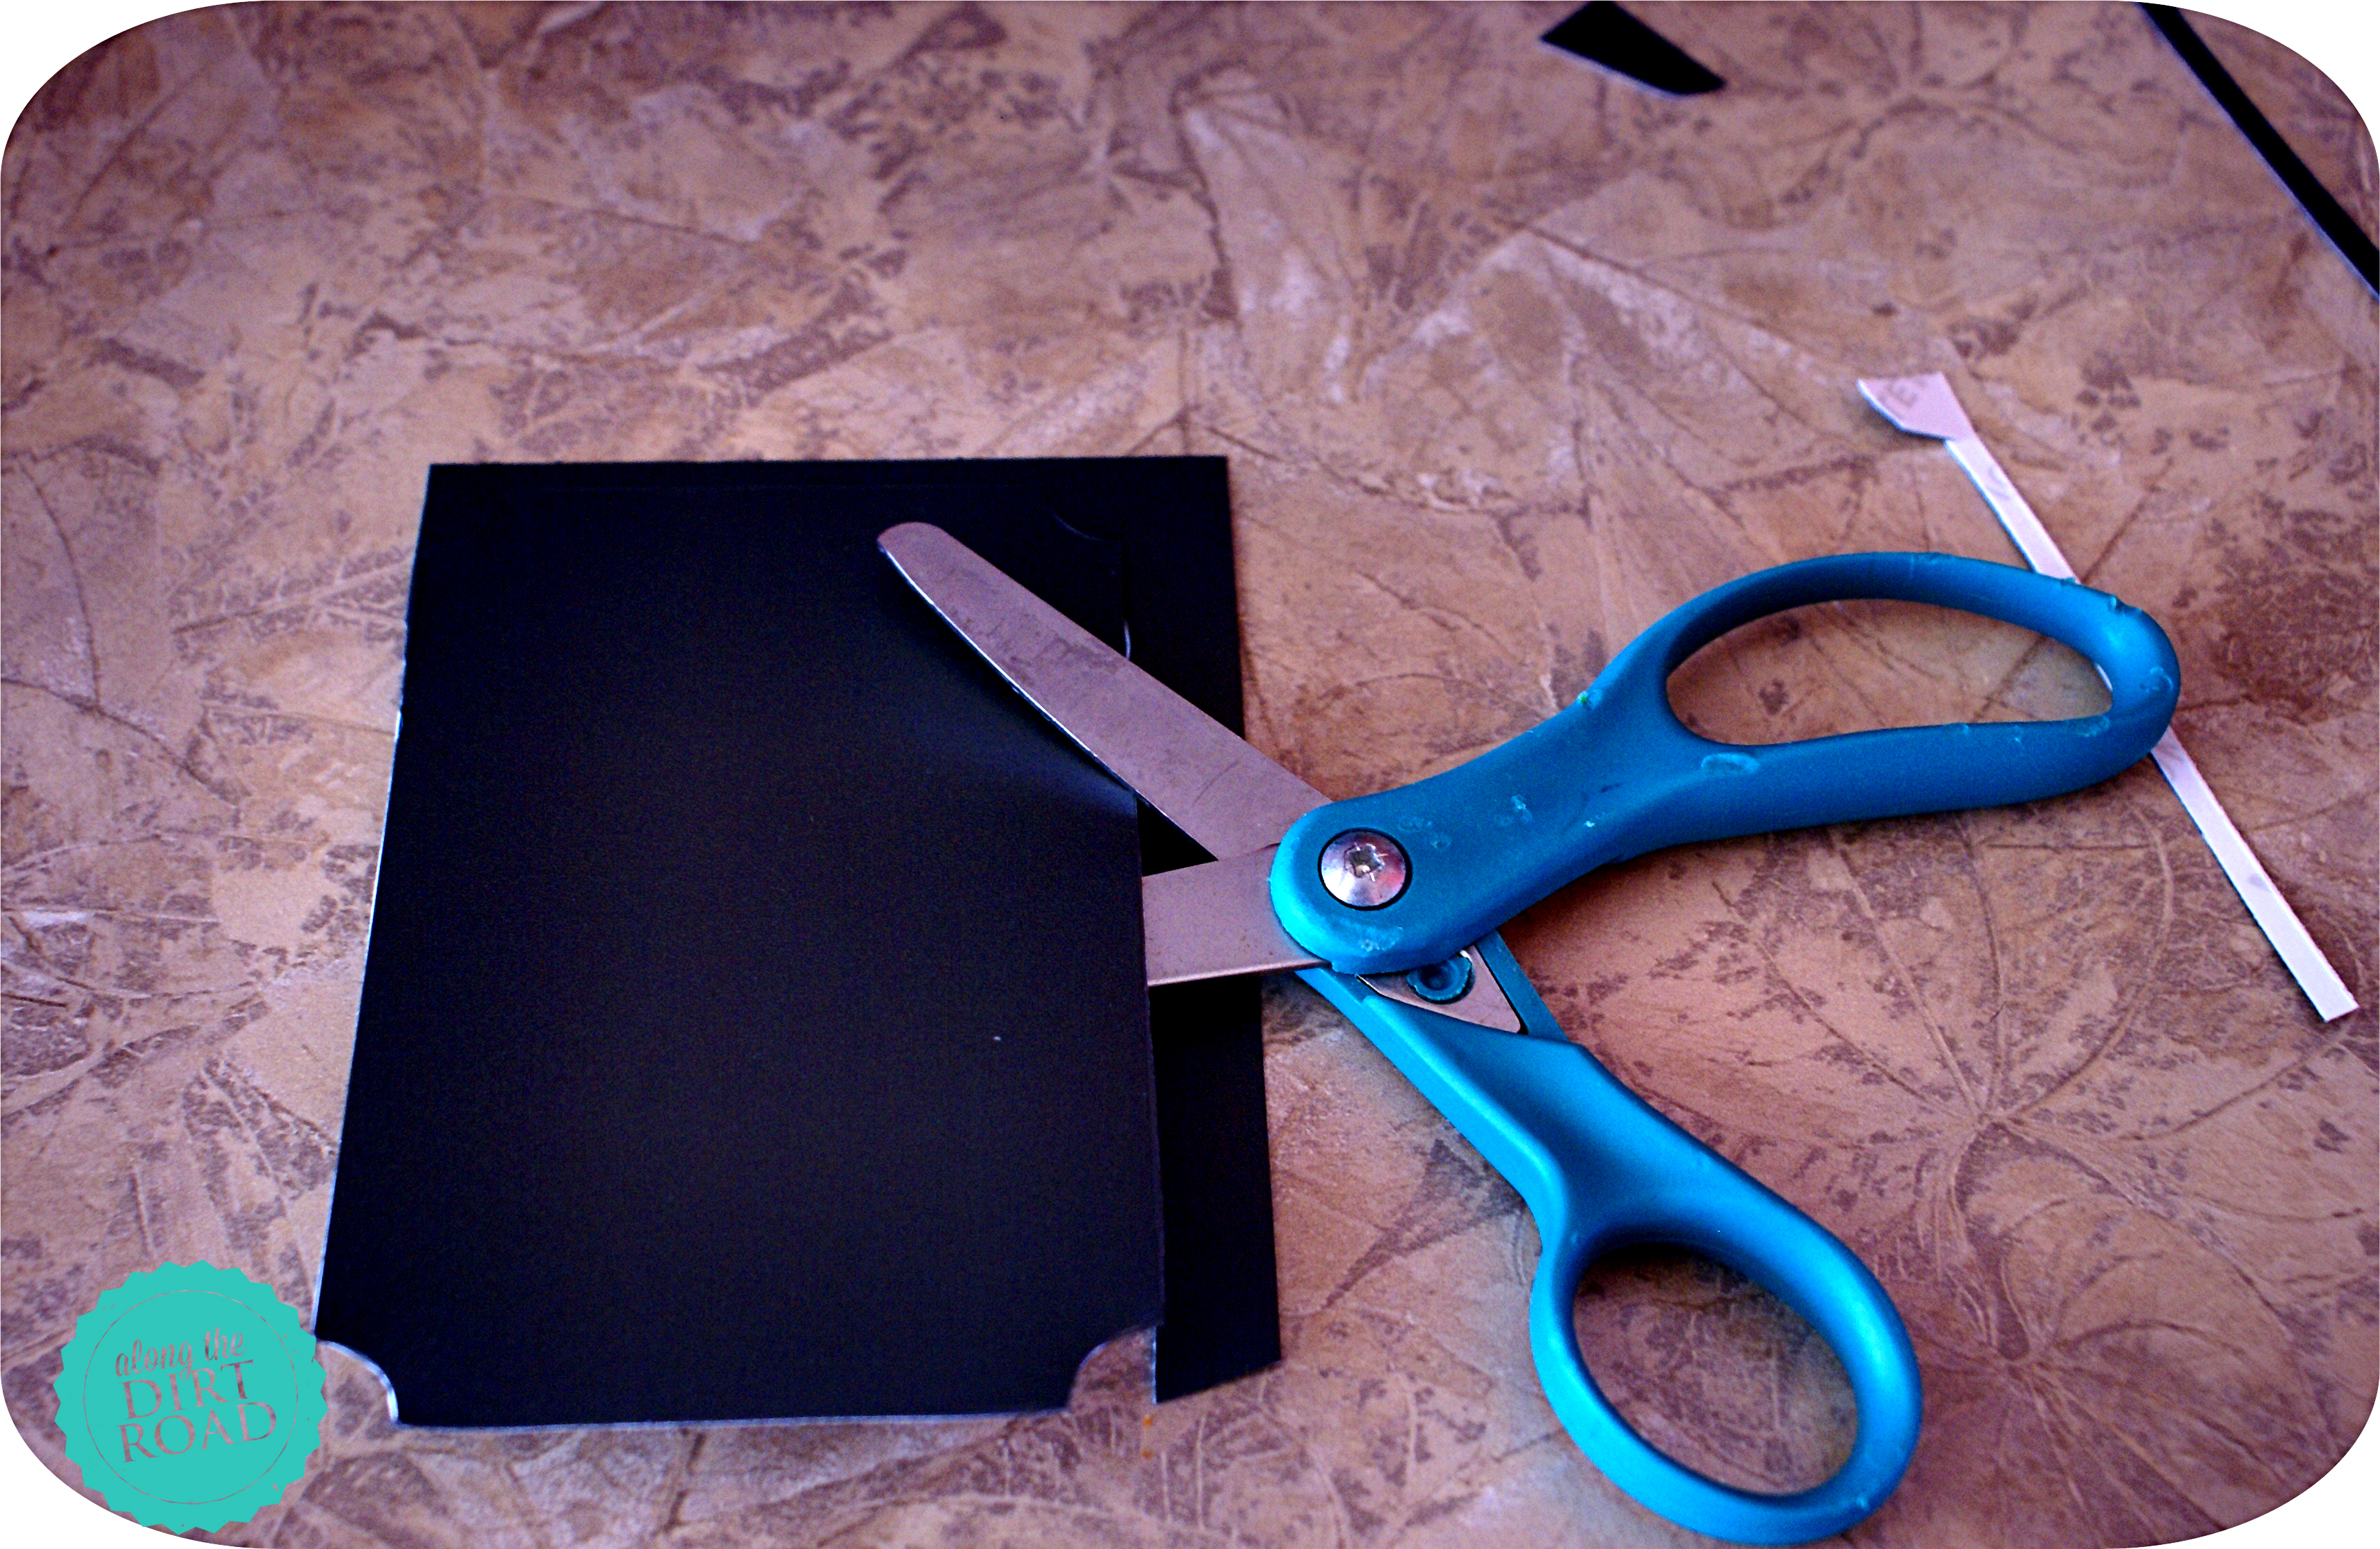 Be sure and be lazy at first and grab the closest scissors...that don't cut very well.  ;)